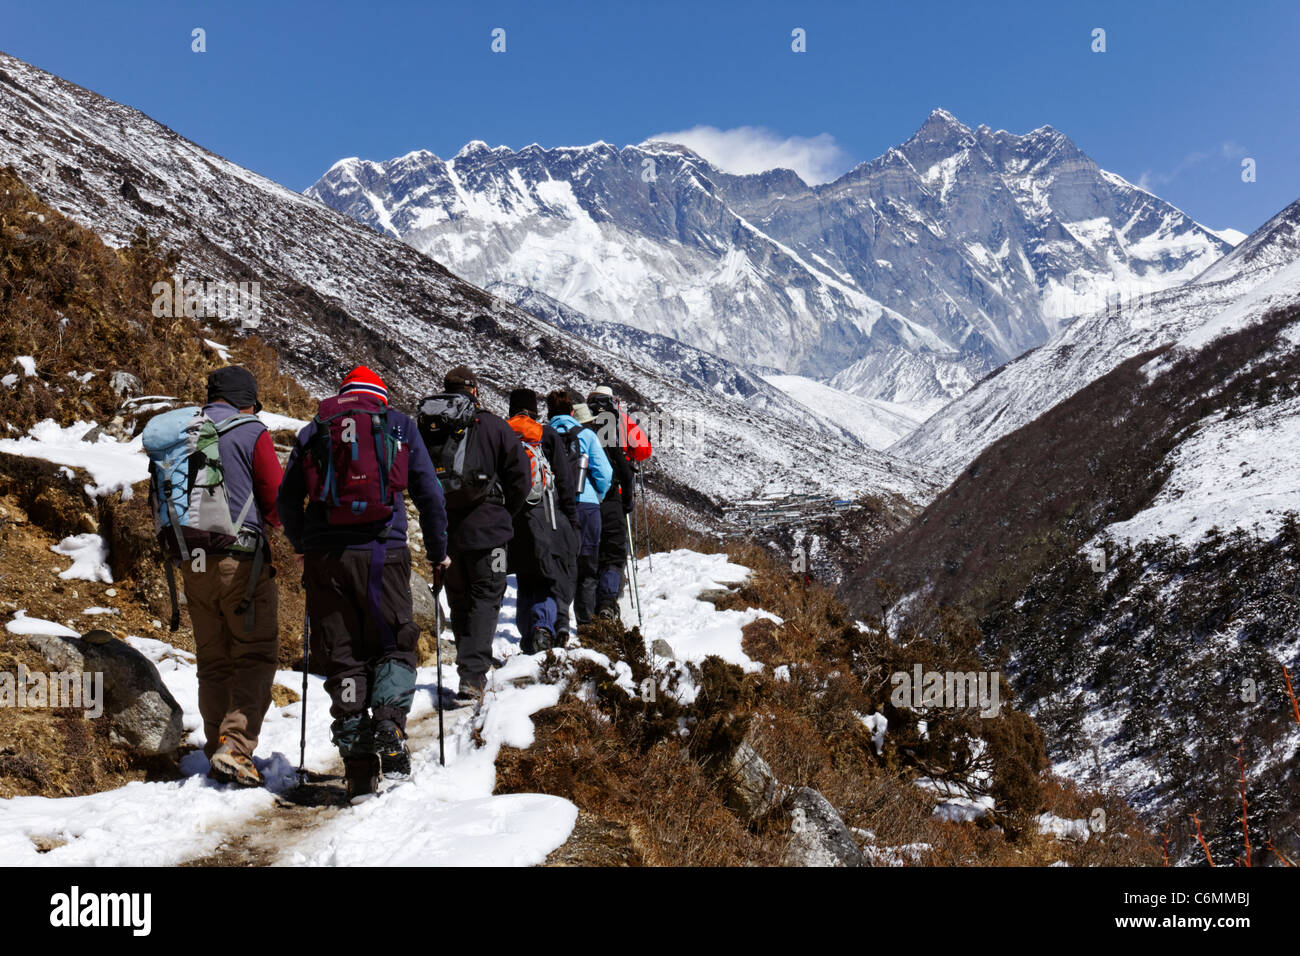 Trekkers walking towards Everest, Everest Region, Nepal - Stock Image